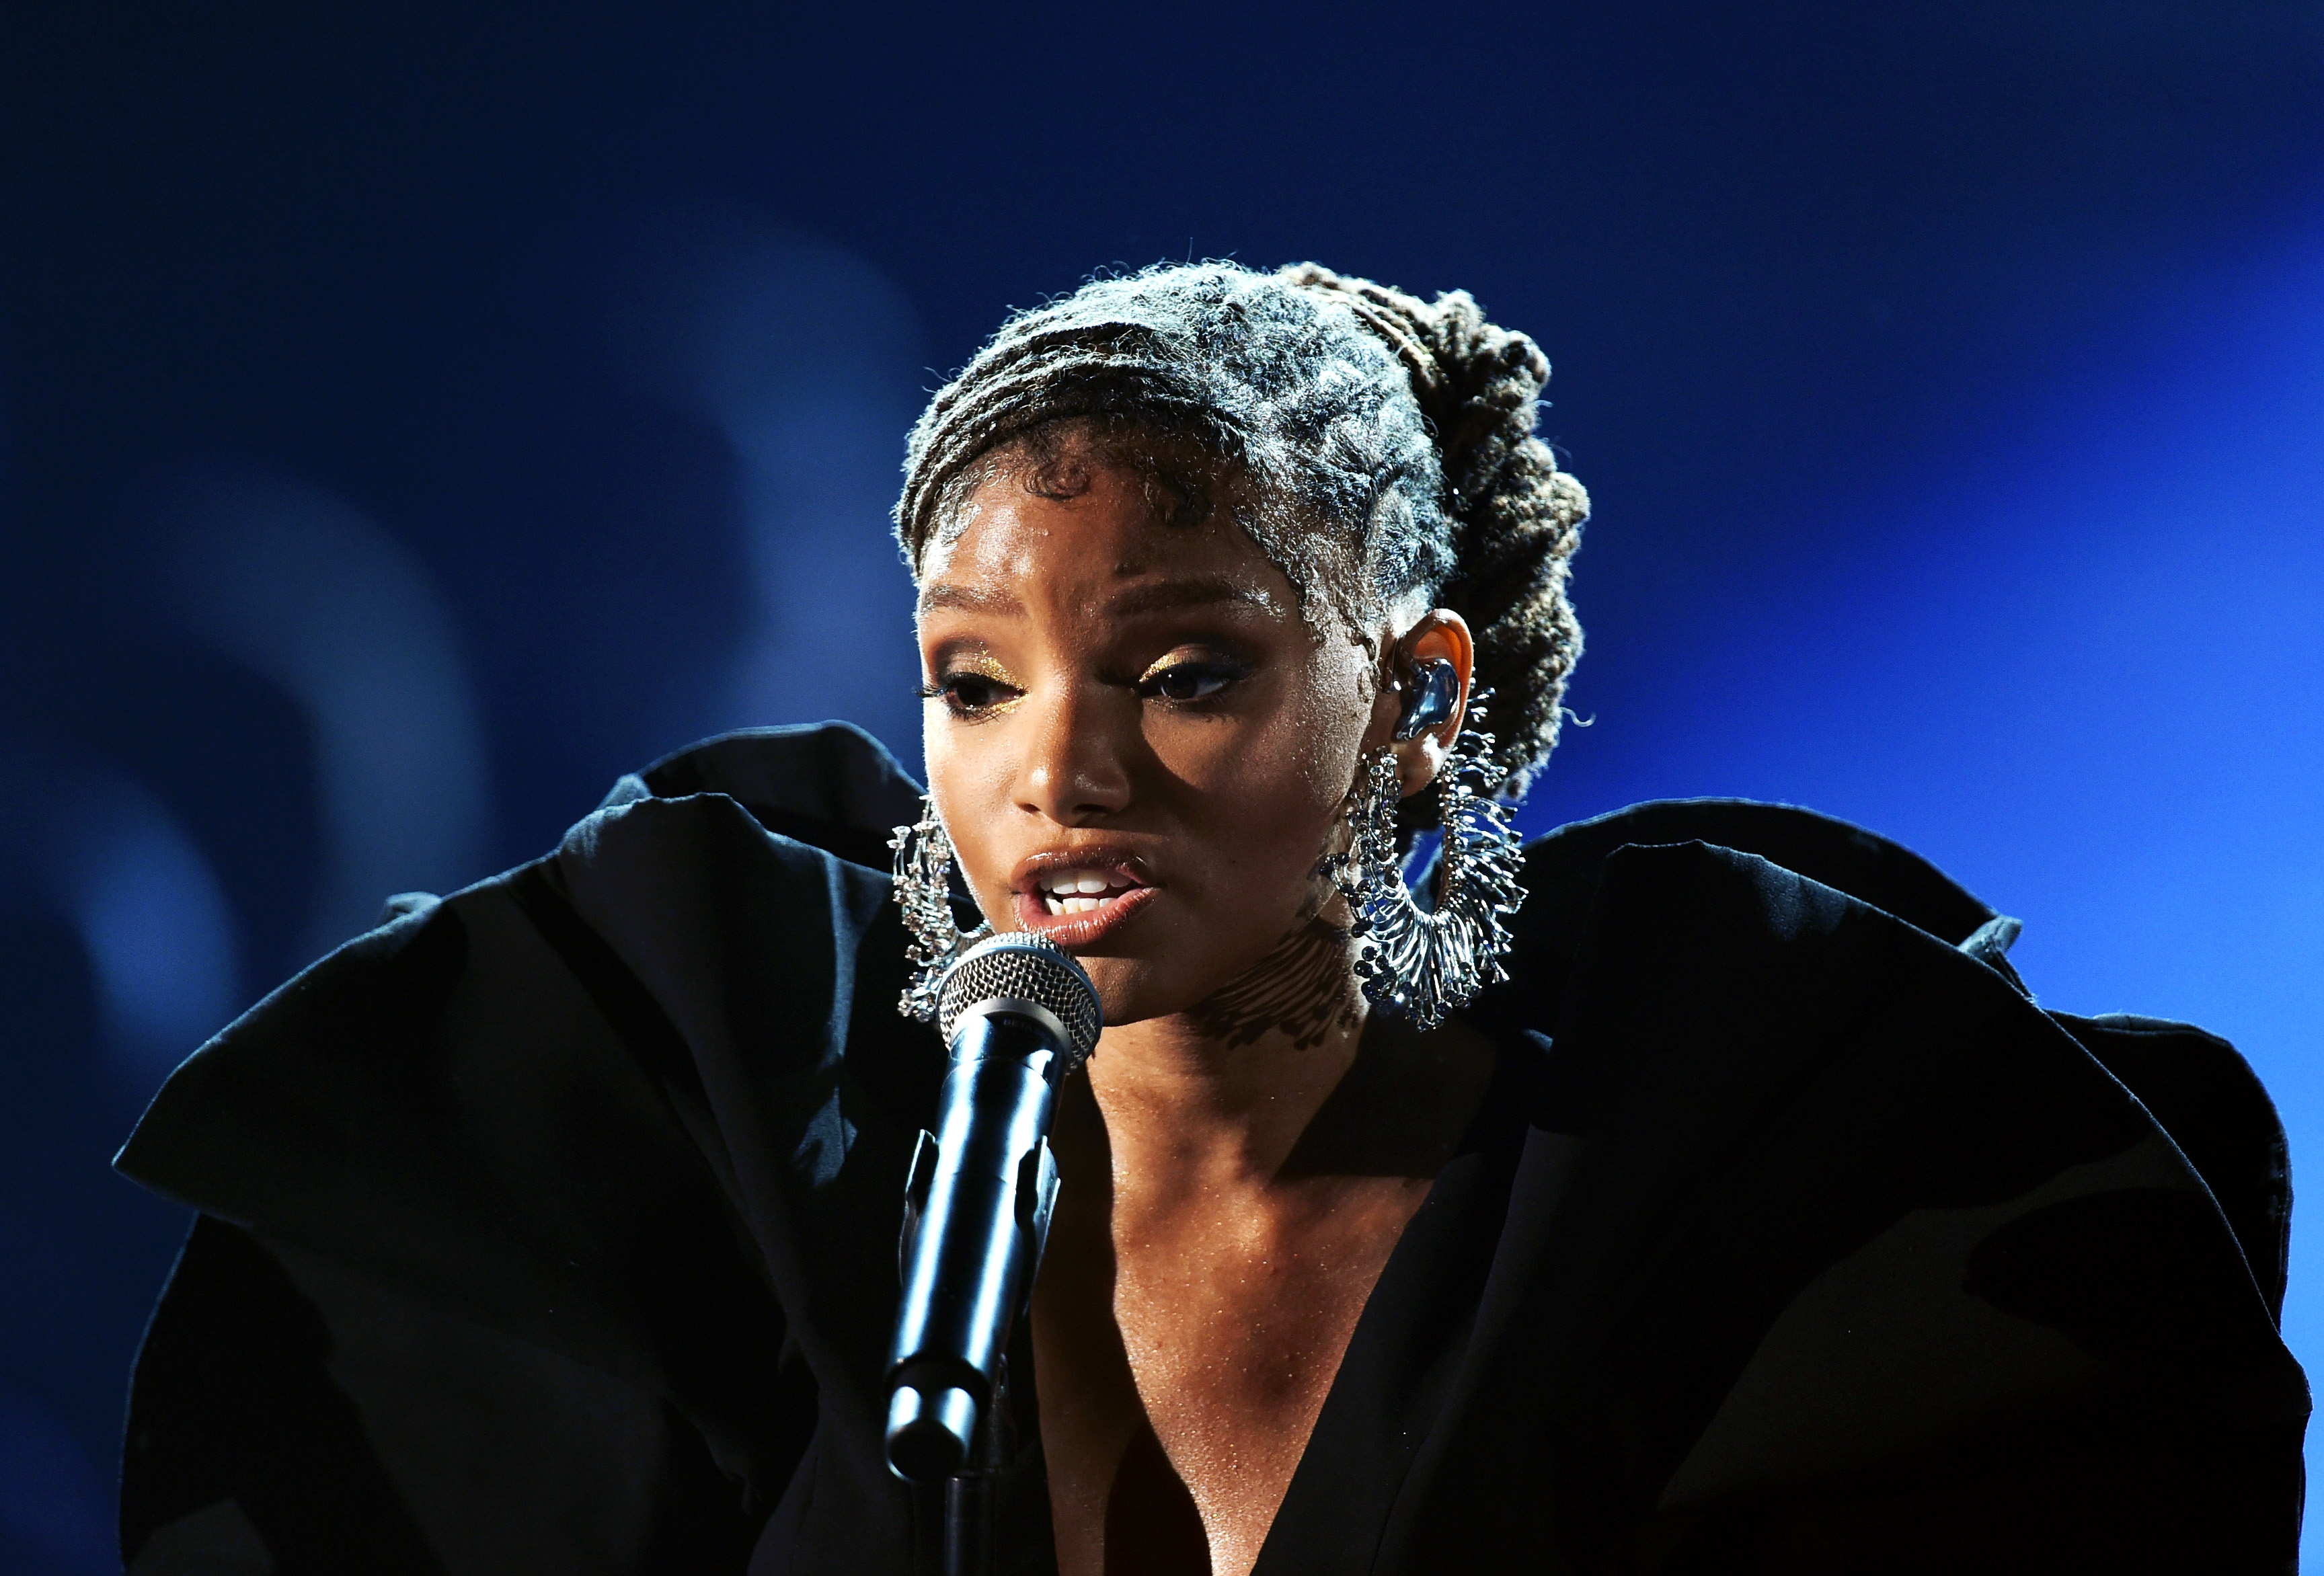 Disney finds its Ariel for The Little Mermaid remake in R&B singer Halle Bailey